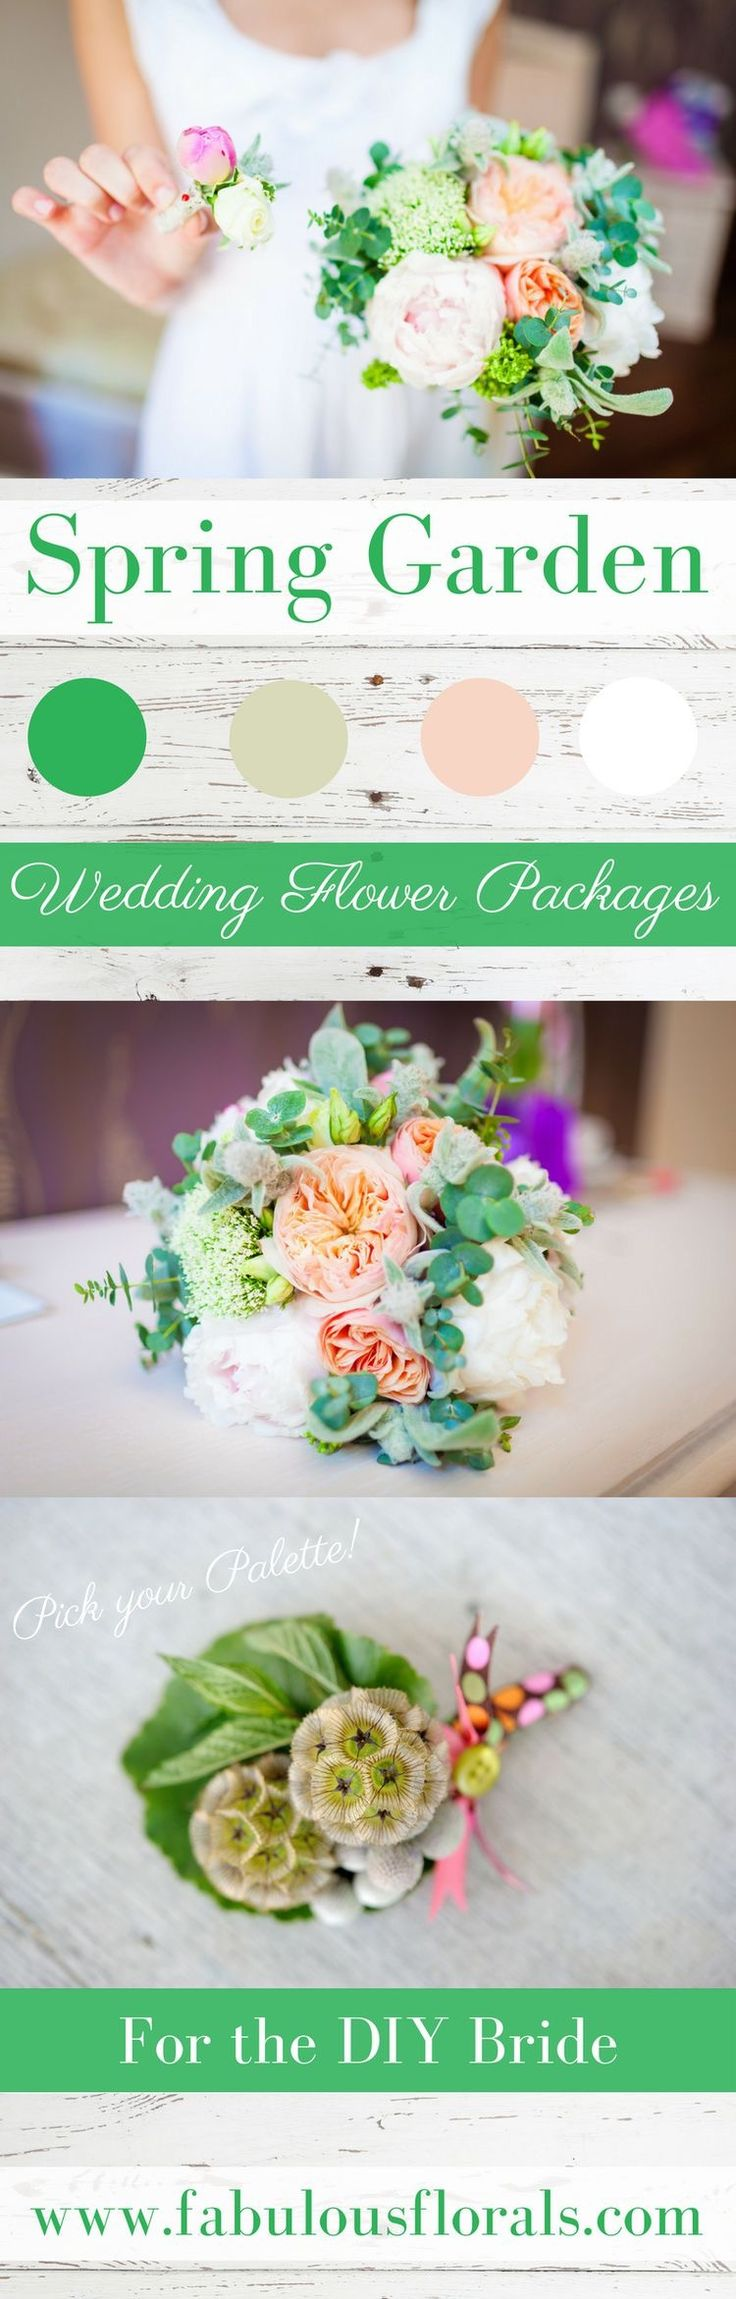 2018 Wedding Trends . How to DIY Wedding Flowers. DIY Flowers wholesale. Overnight shipping . But just one bunch! #weddingpalette #pinkweddingflowers #weddingflowerarrangement #pinkwedding #diywedding #2018wedding #weddingtrends